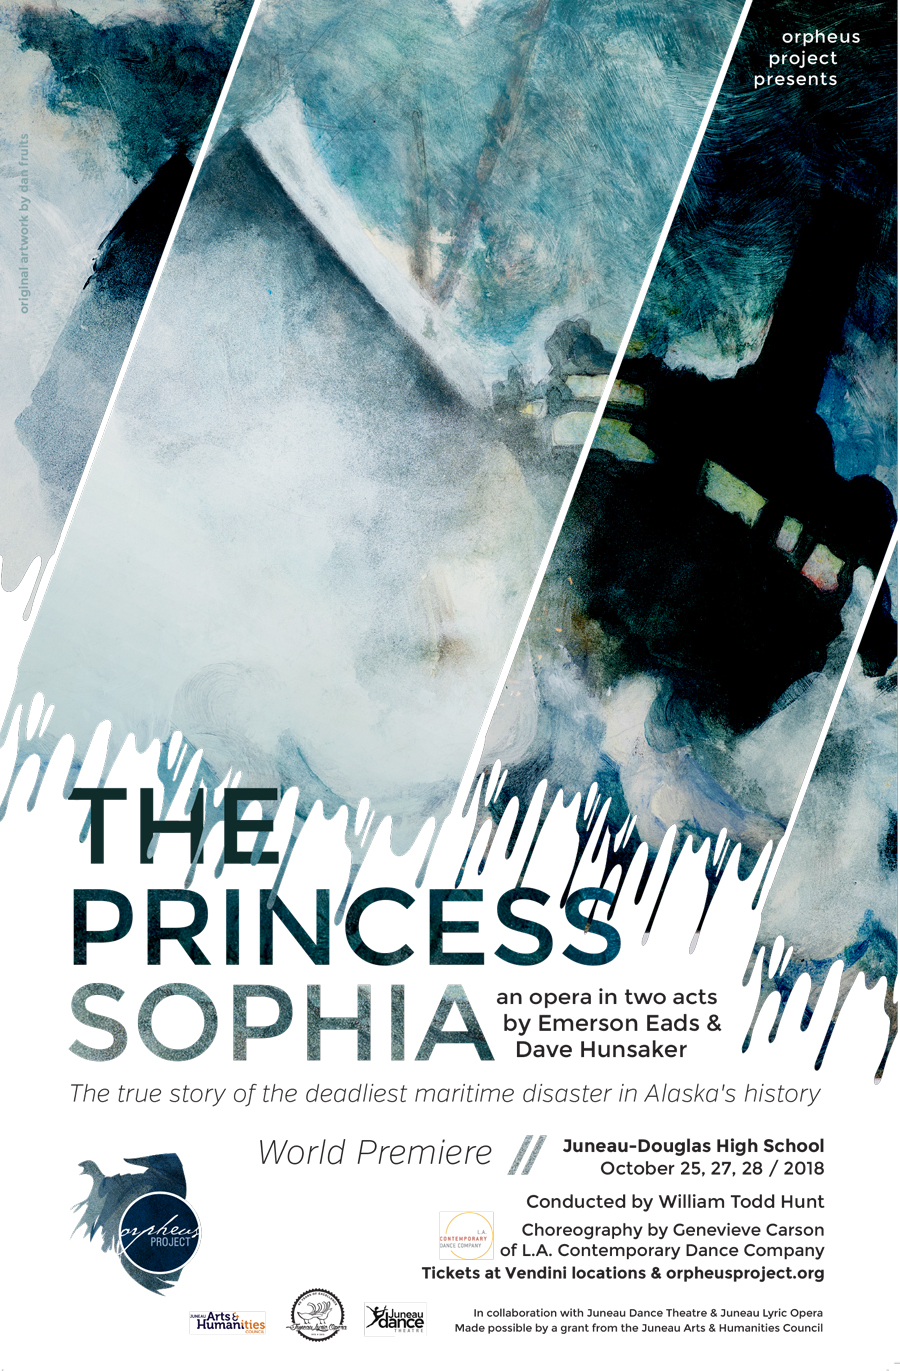 The-Princess-Sophia_poster-v4.jpg